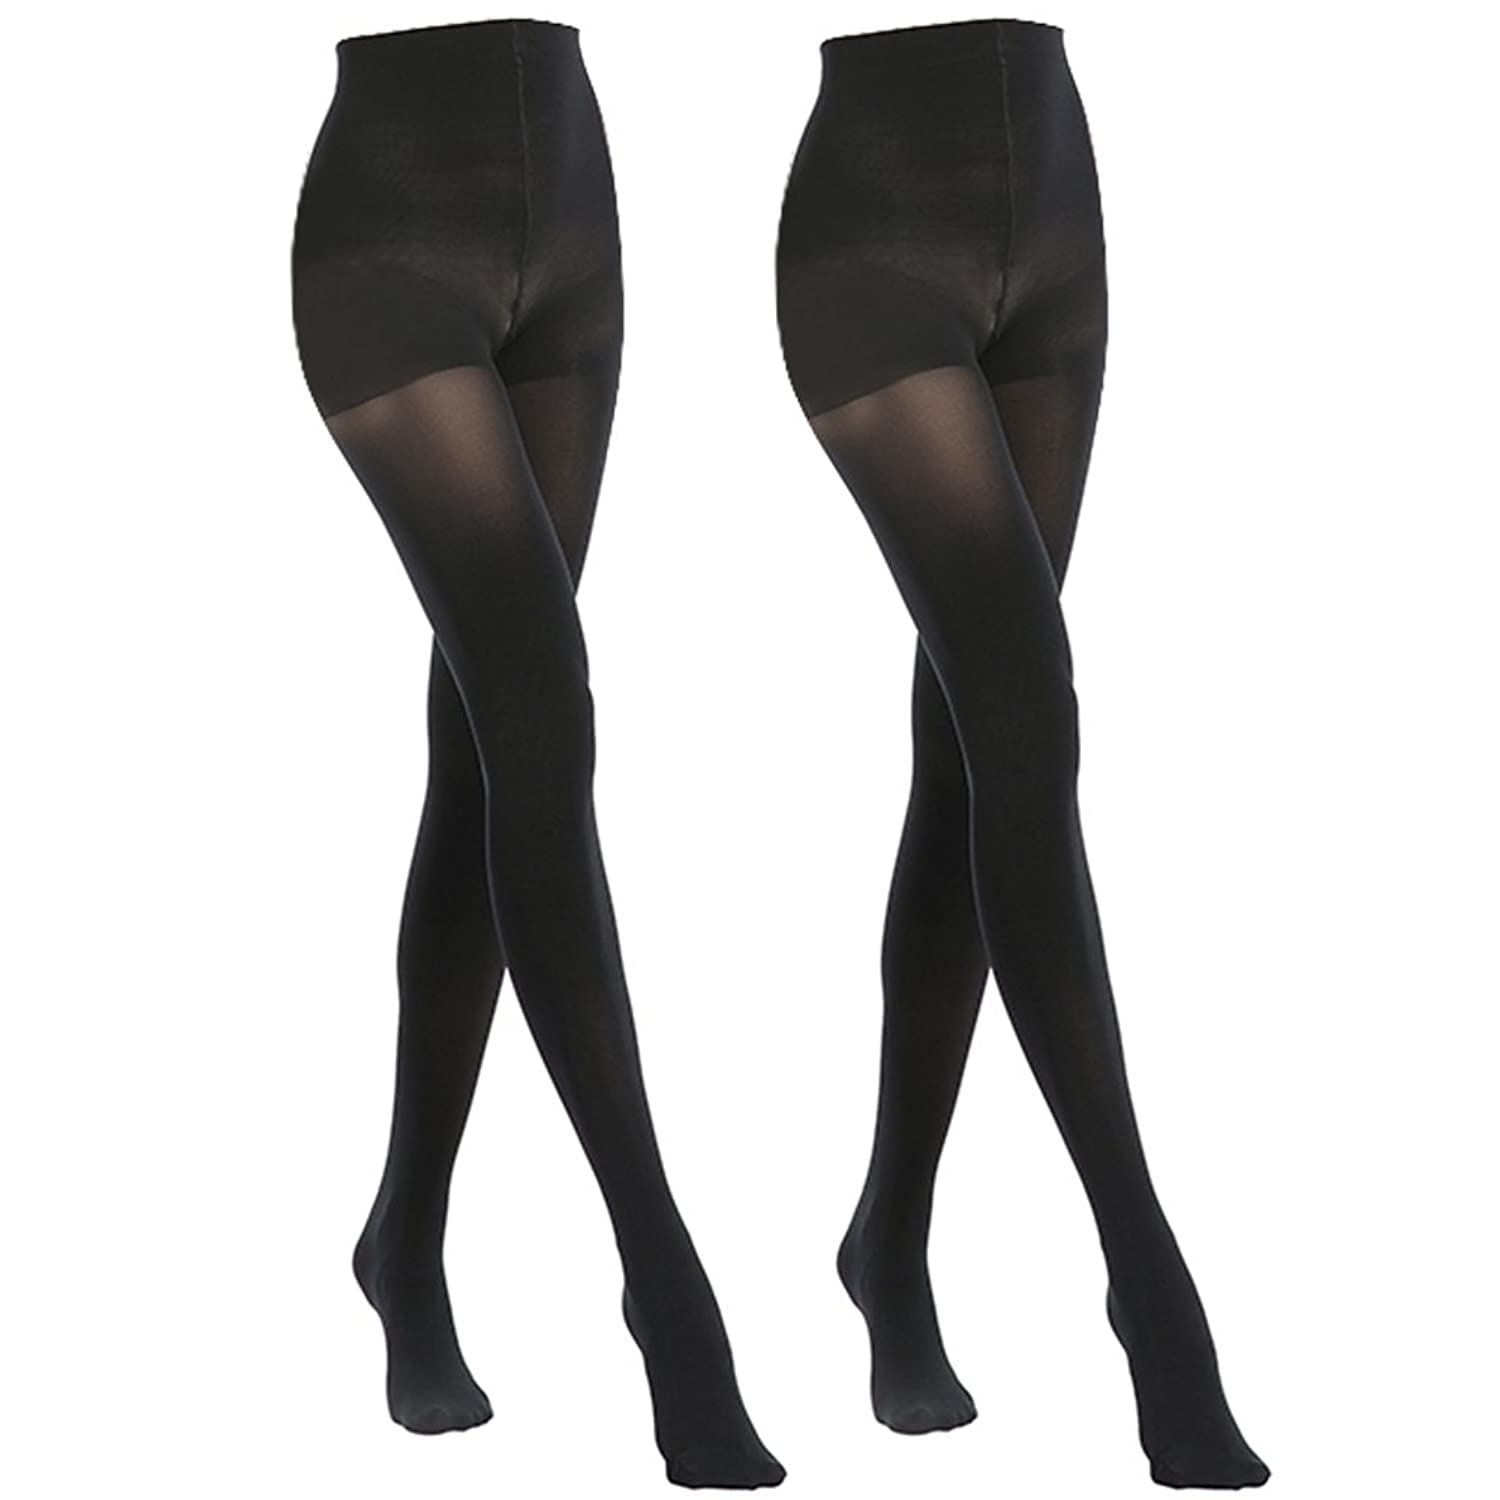 57d9b5d00d2 MANZI 2 Pairs 70 Denier Women s Tights Stretch Run Resistant Opaque Control  Top Tights